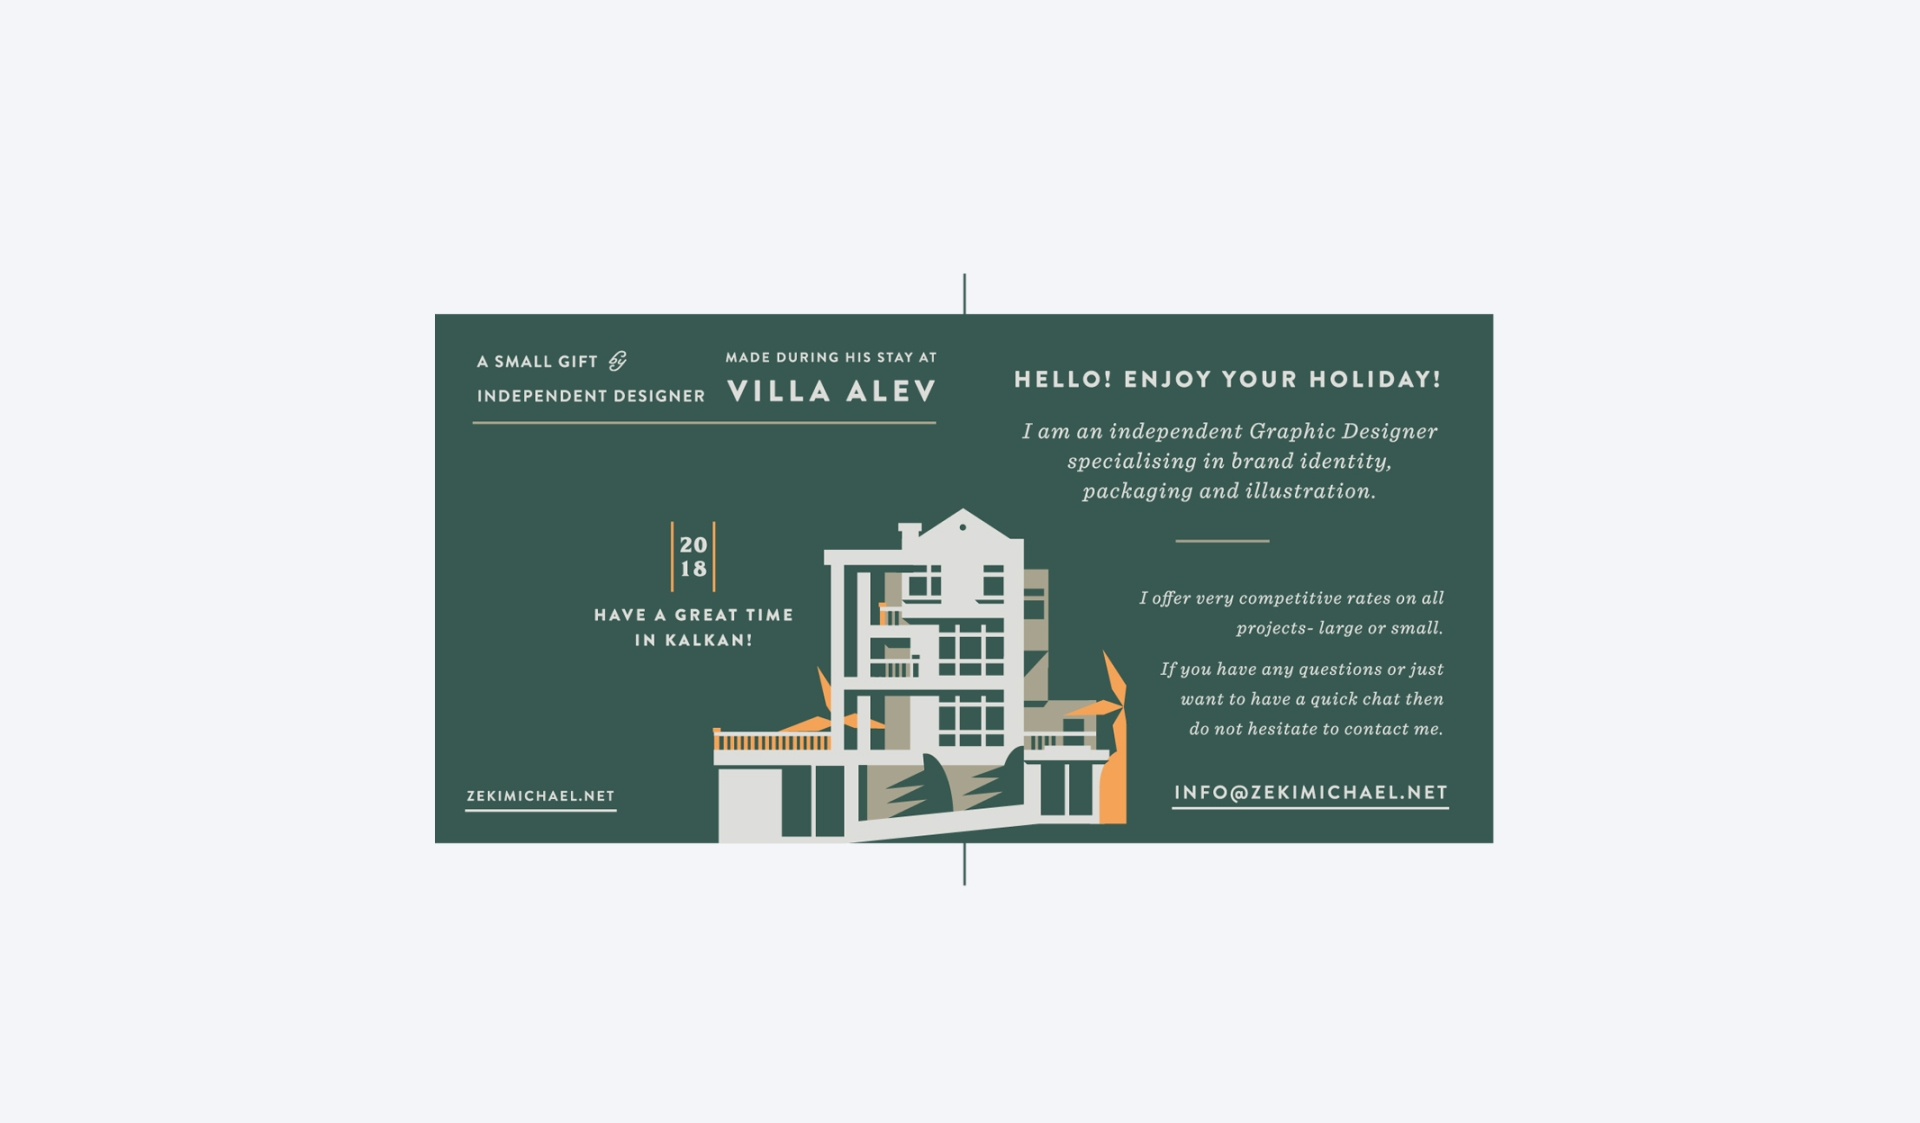 zeki-michael-badge-villa-alev-kalkan-turkey-design-illustration-travel-journey-journal-print